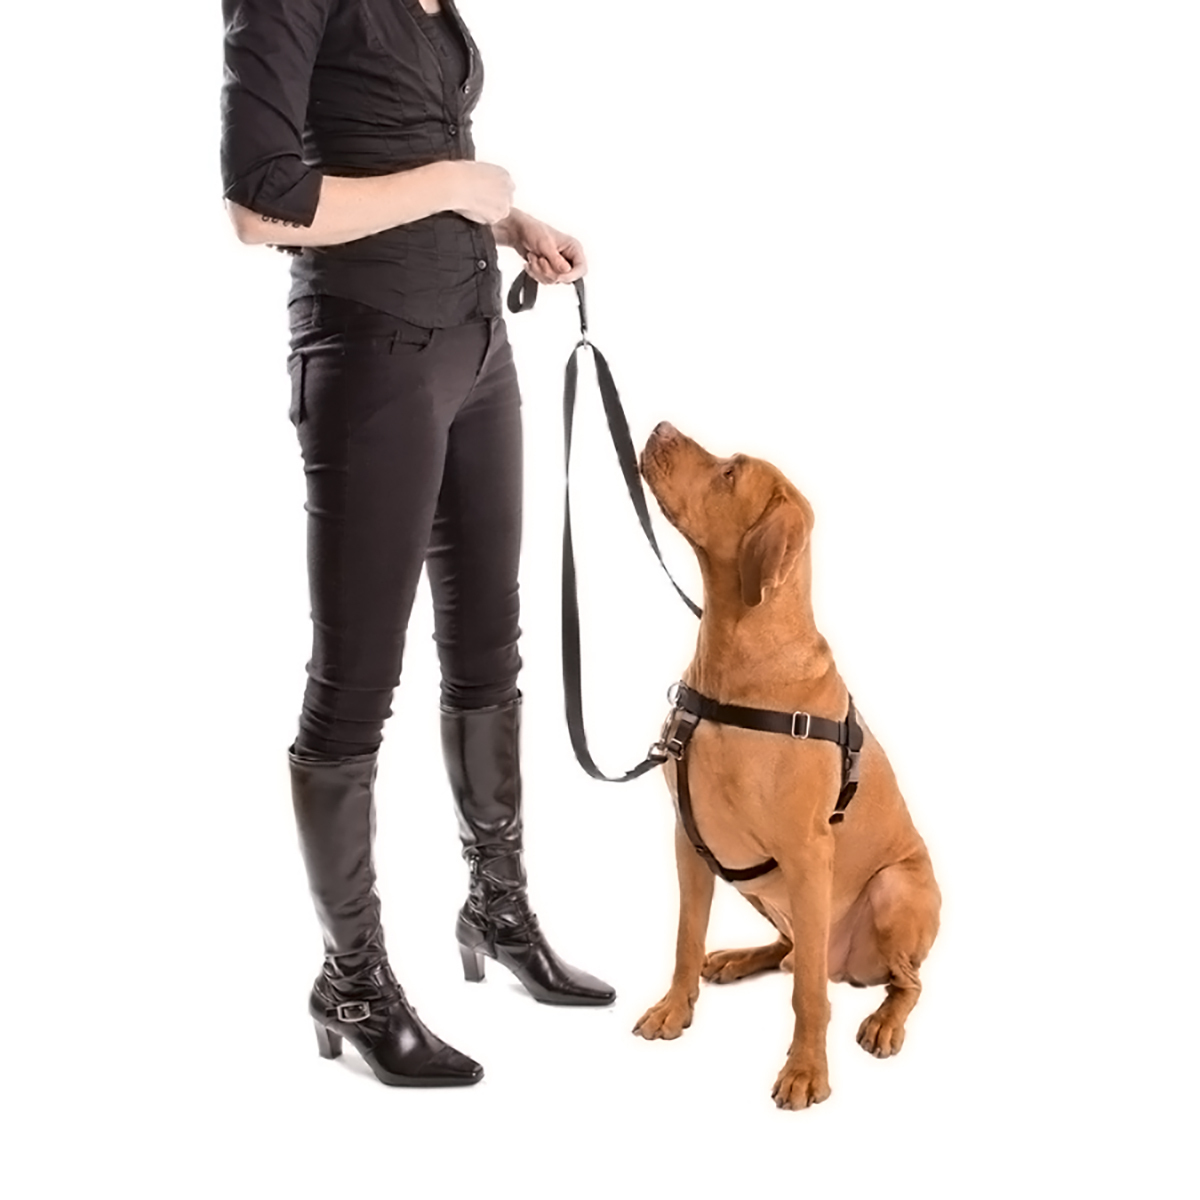 Teaching Your Dog To Walk Without A Leash